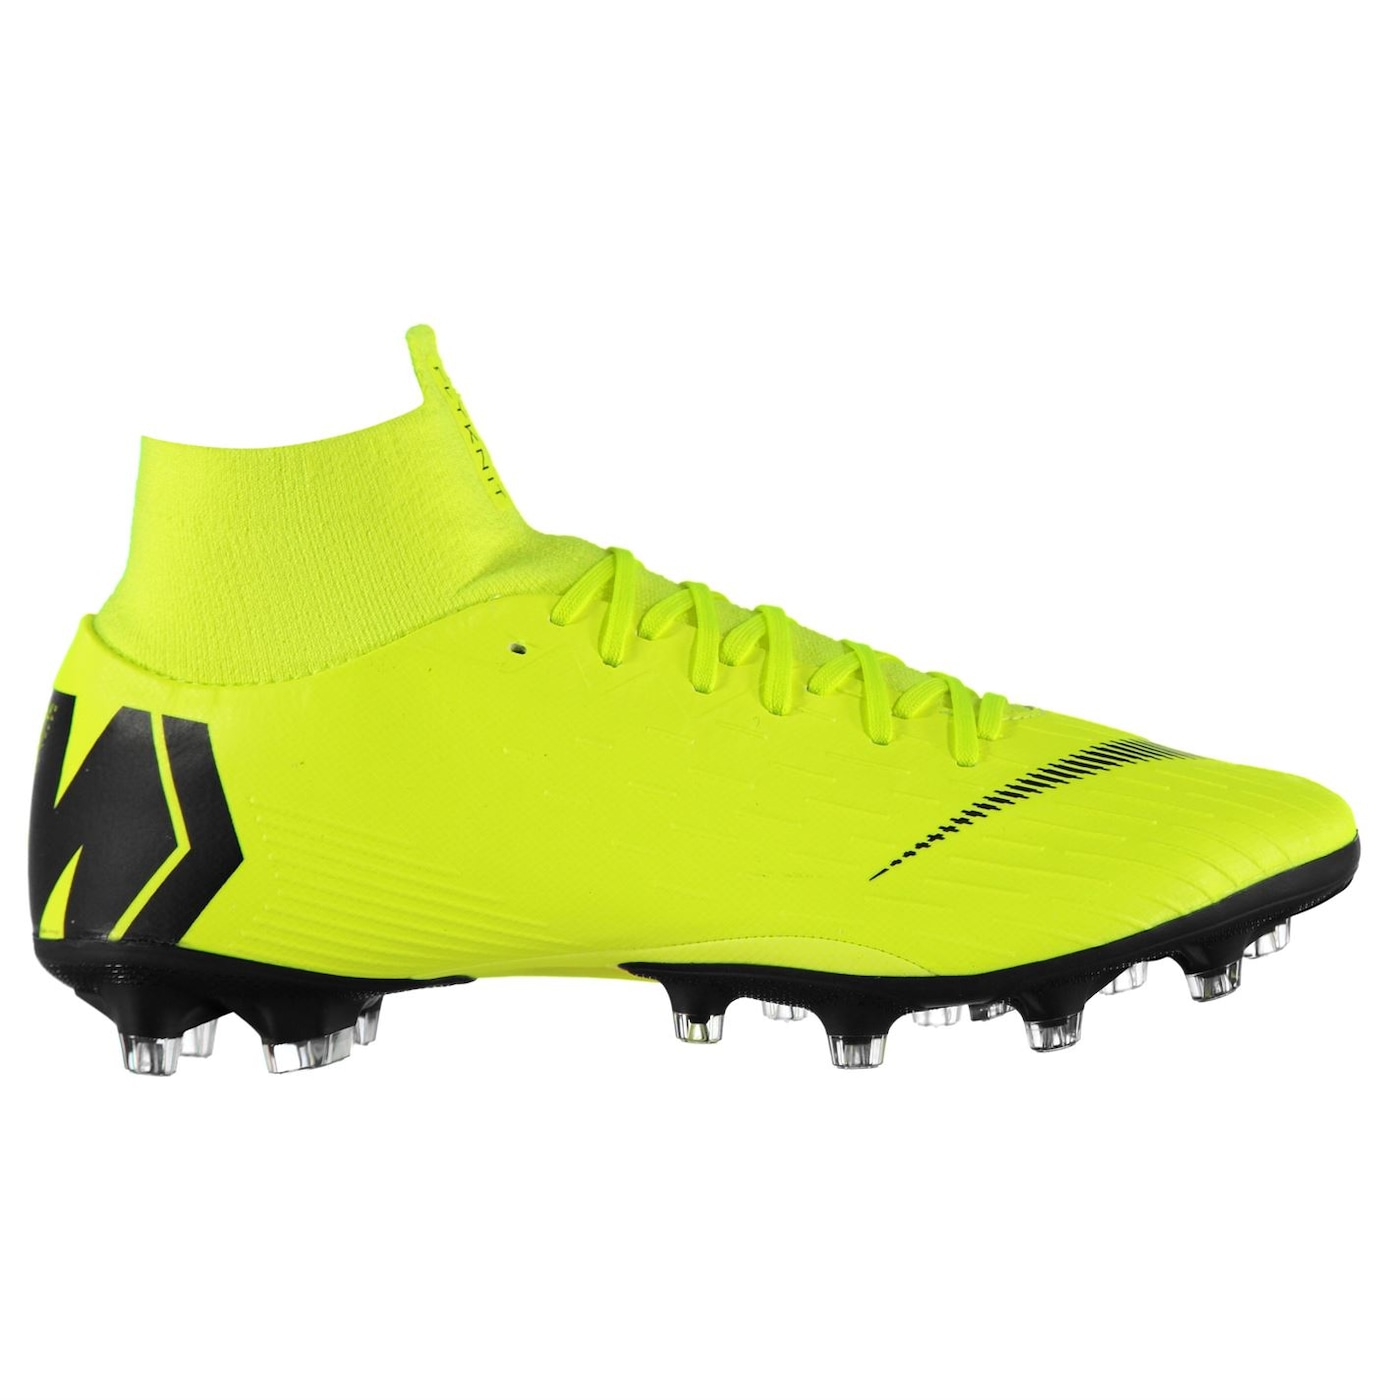 Nike Mercurial Superfly Pro DF Mens AG Football Boots